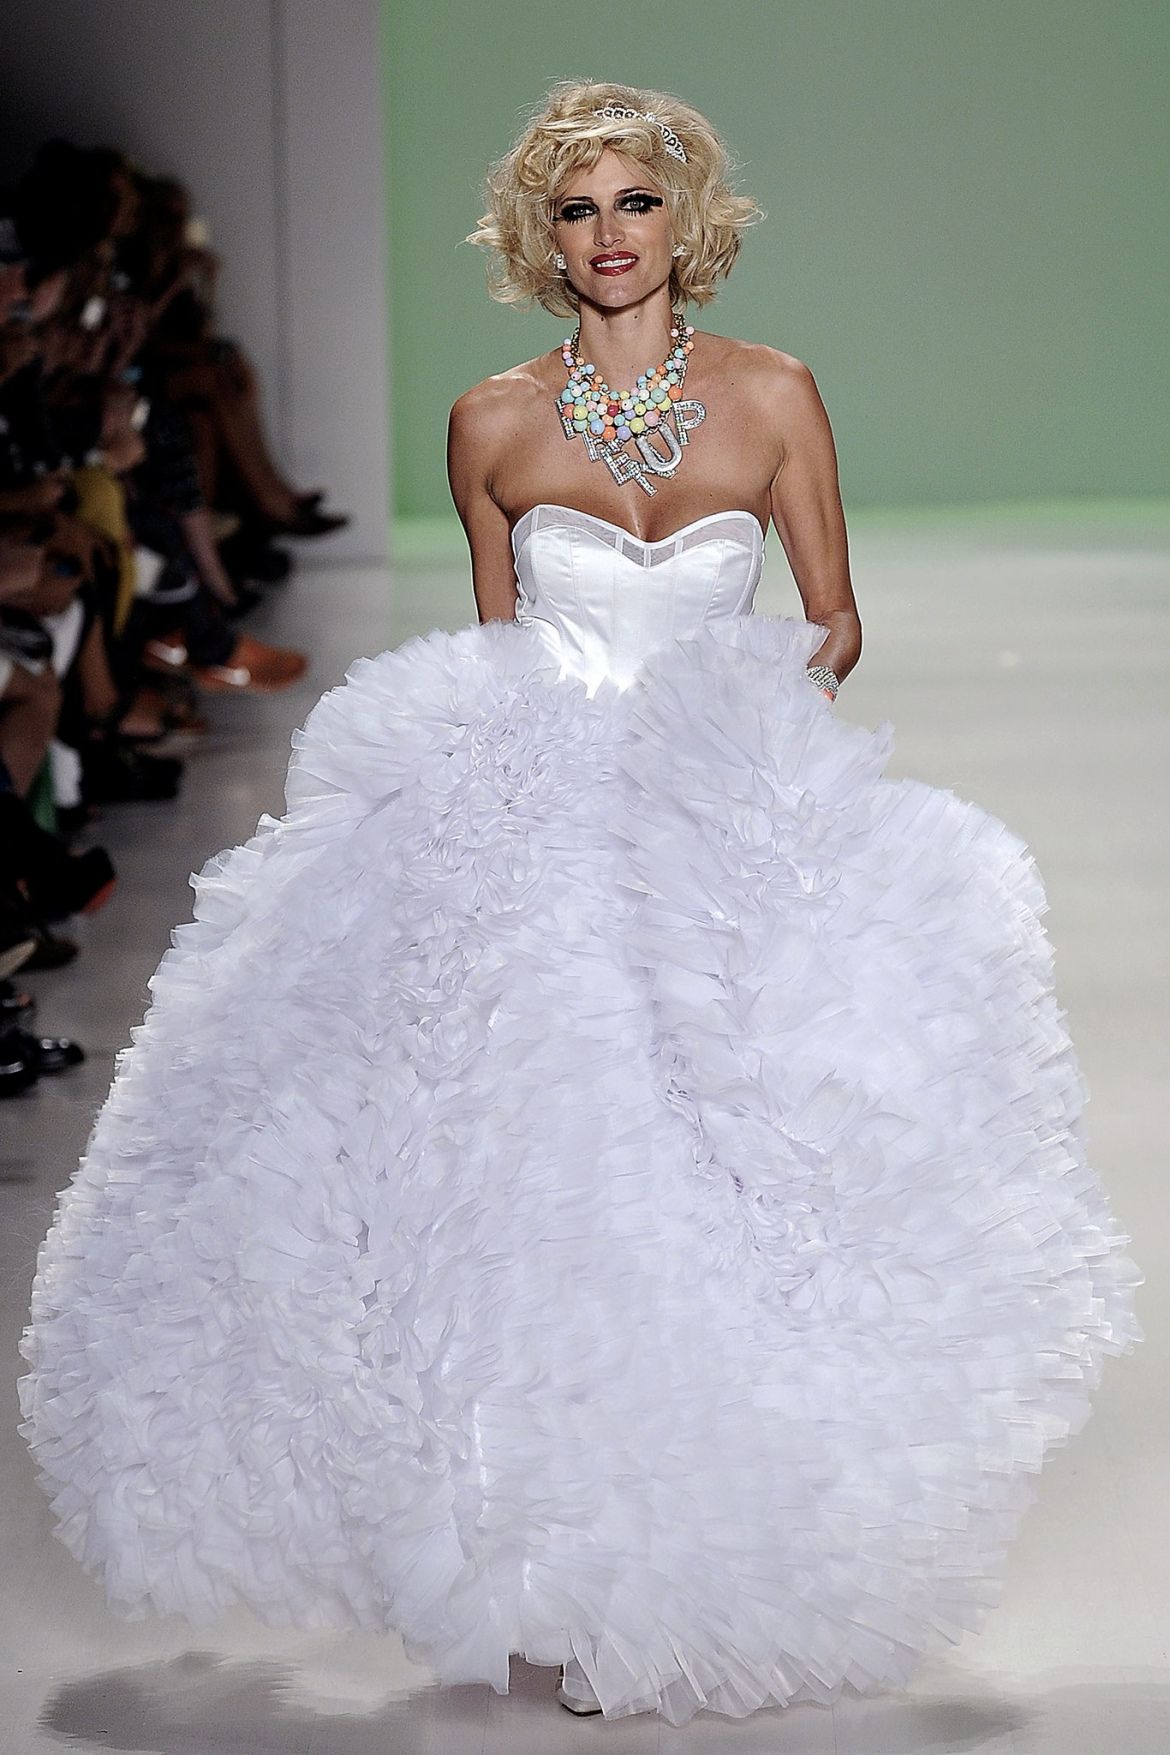 70+ Betsey Johnson Wedding Dresses - Dresses for Guest at Wedding ...